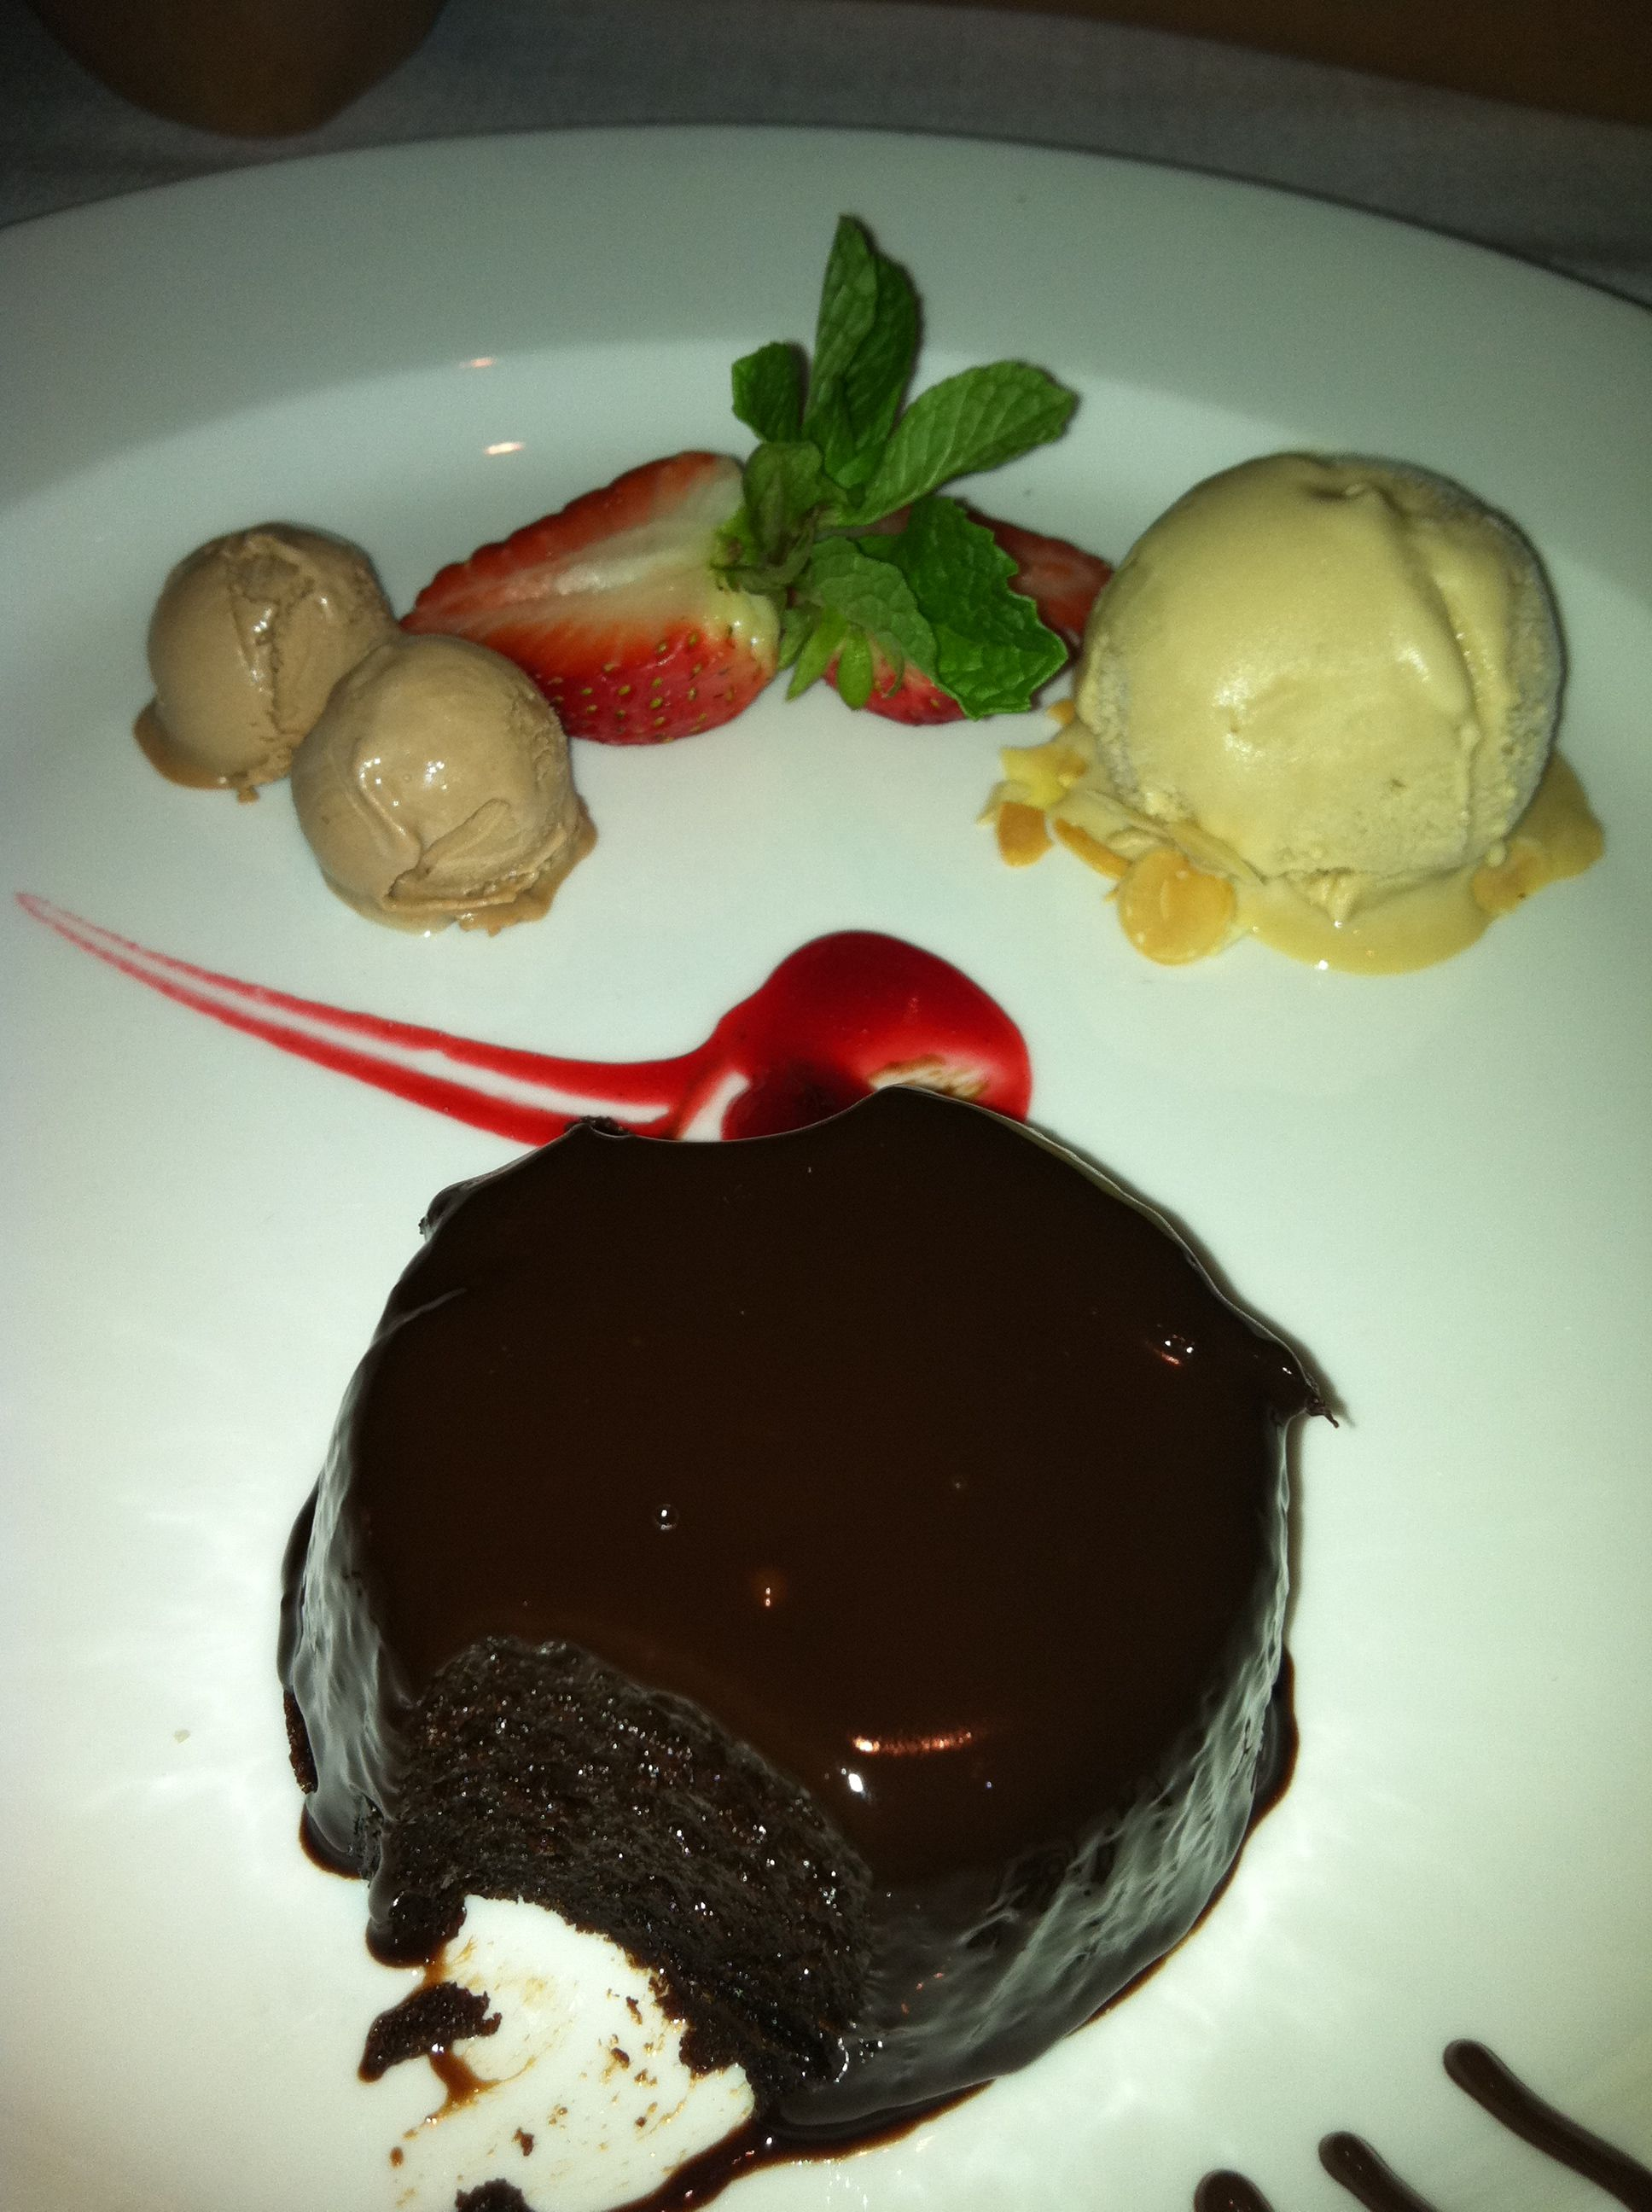 Warm chocolate cake with almond ice cream and berry sauce